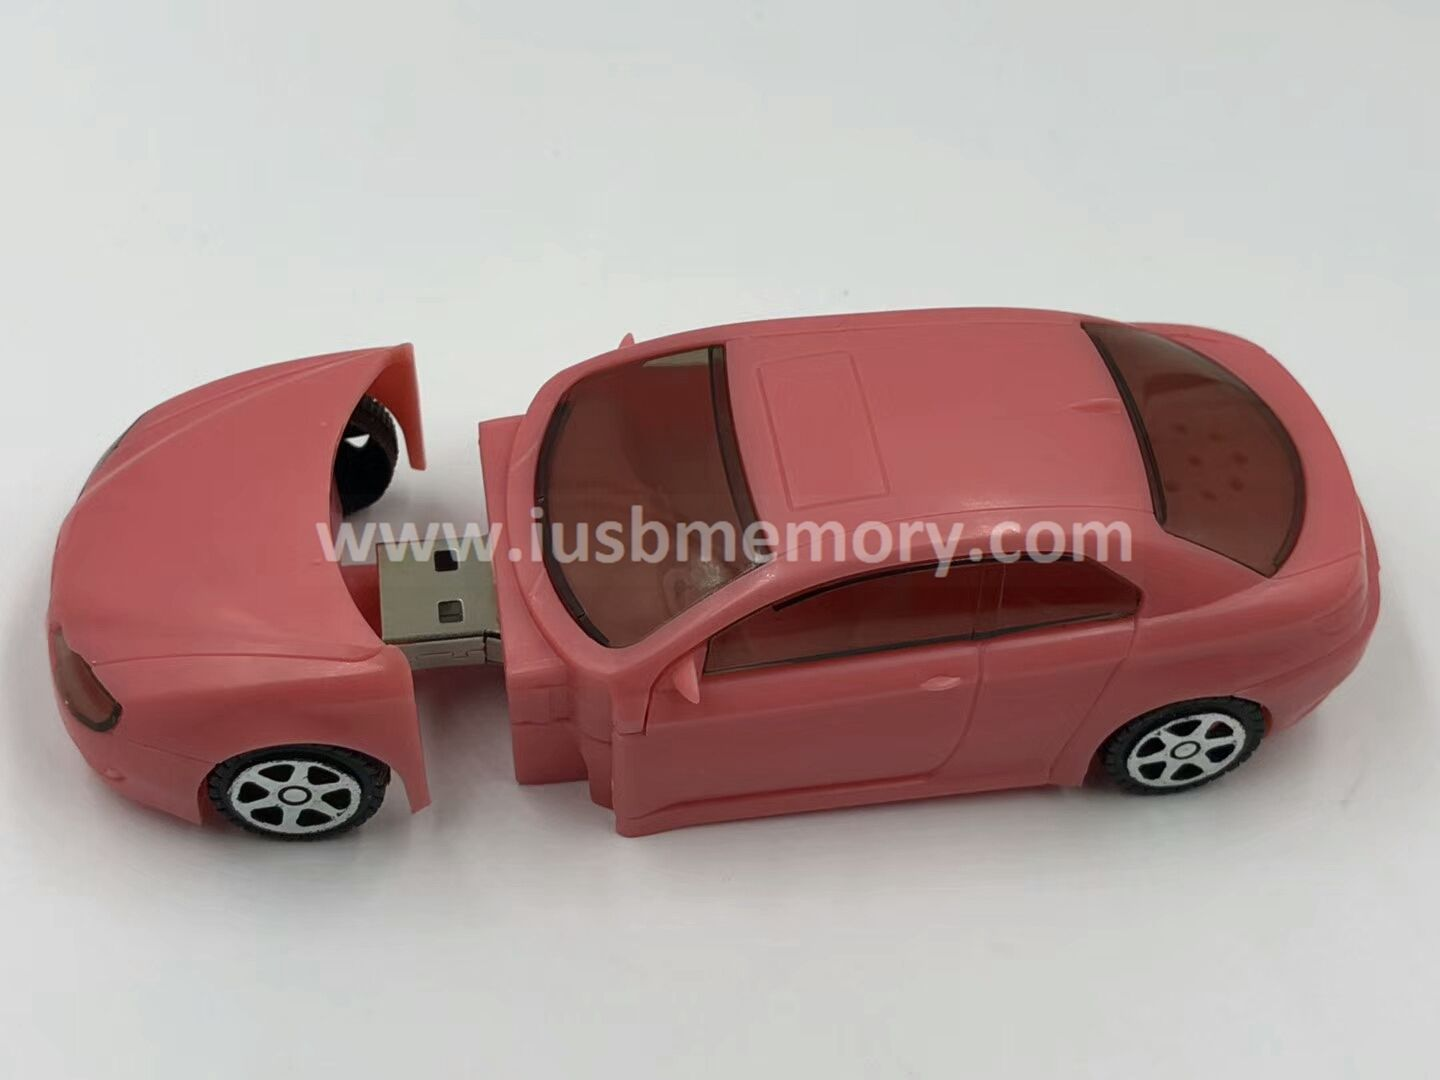 SP-014 promotional plastic car ubs memory from China